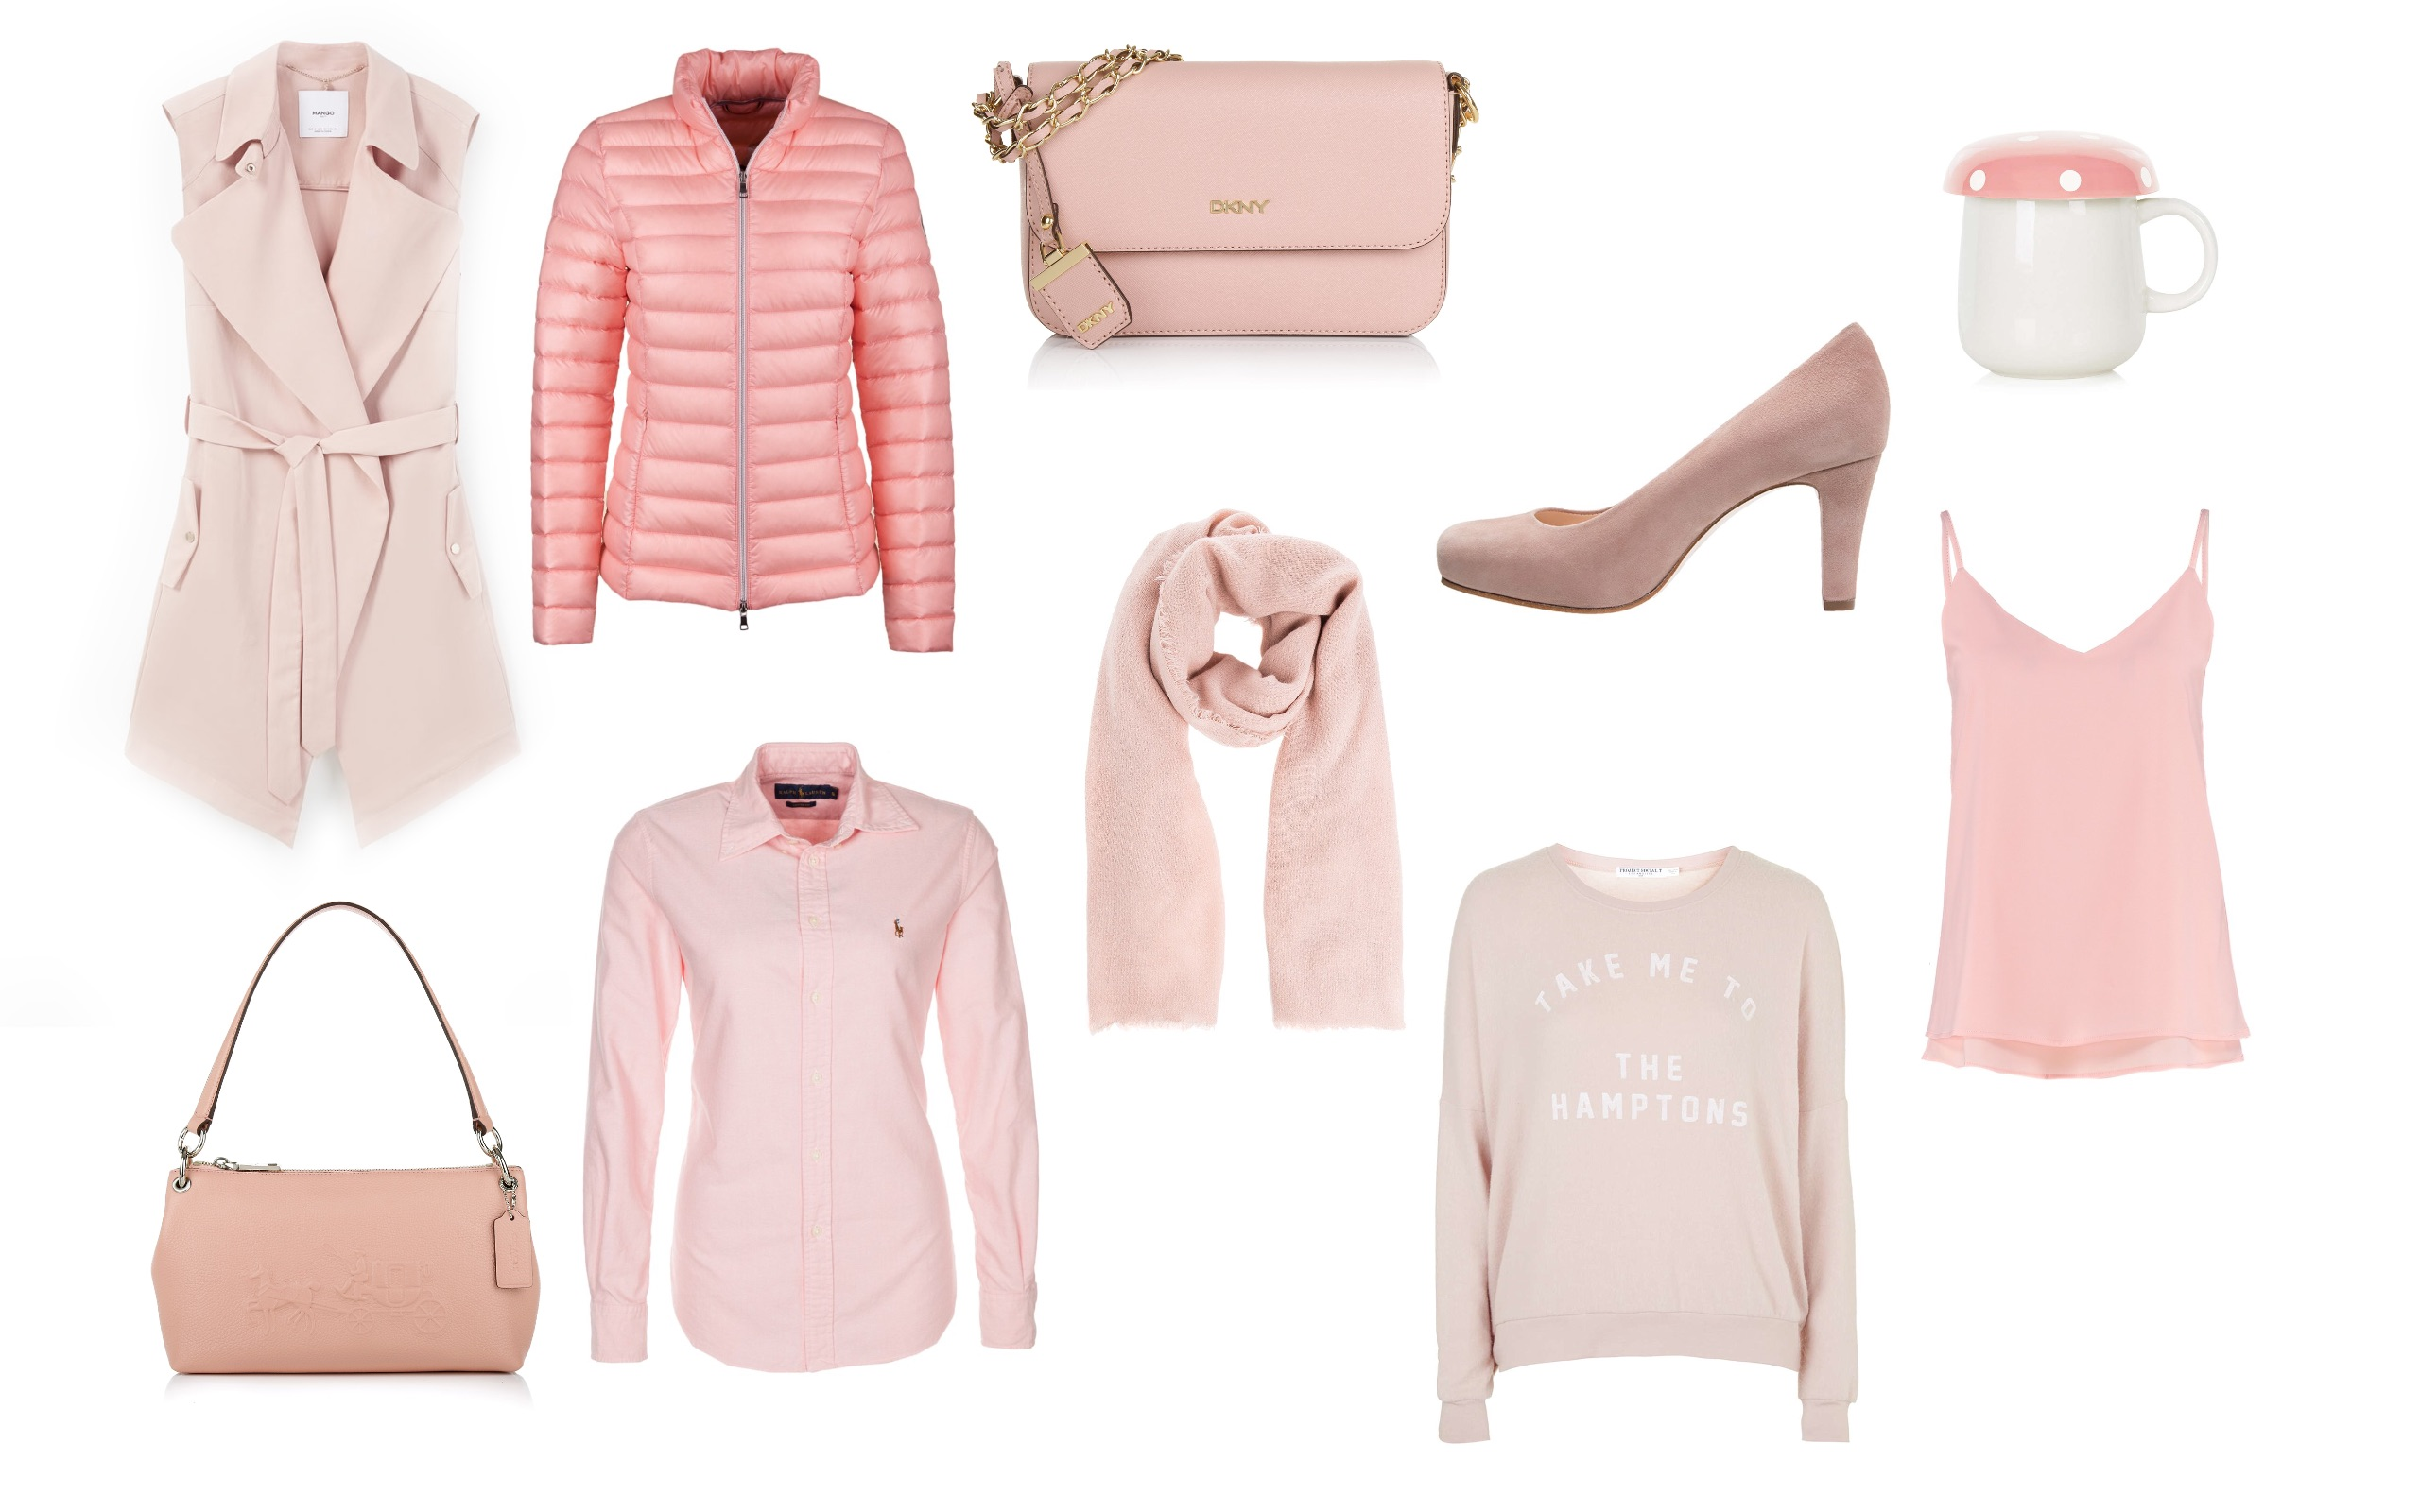 Fashion picks in Rose Quartz & Serenity